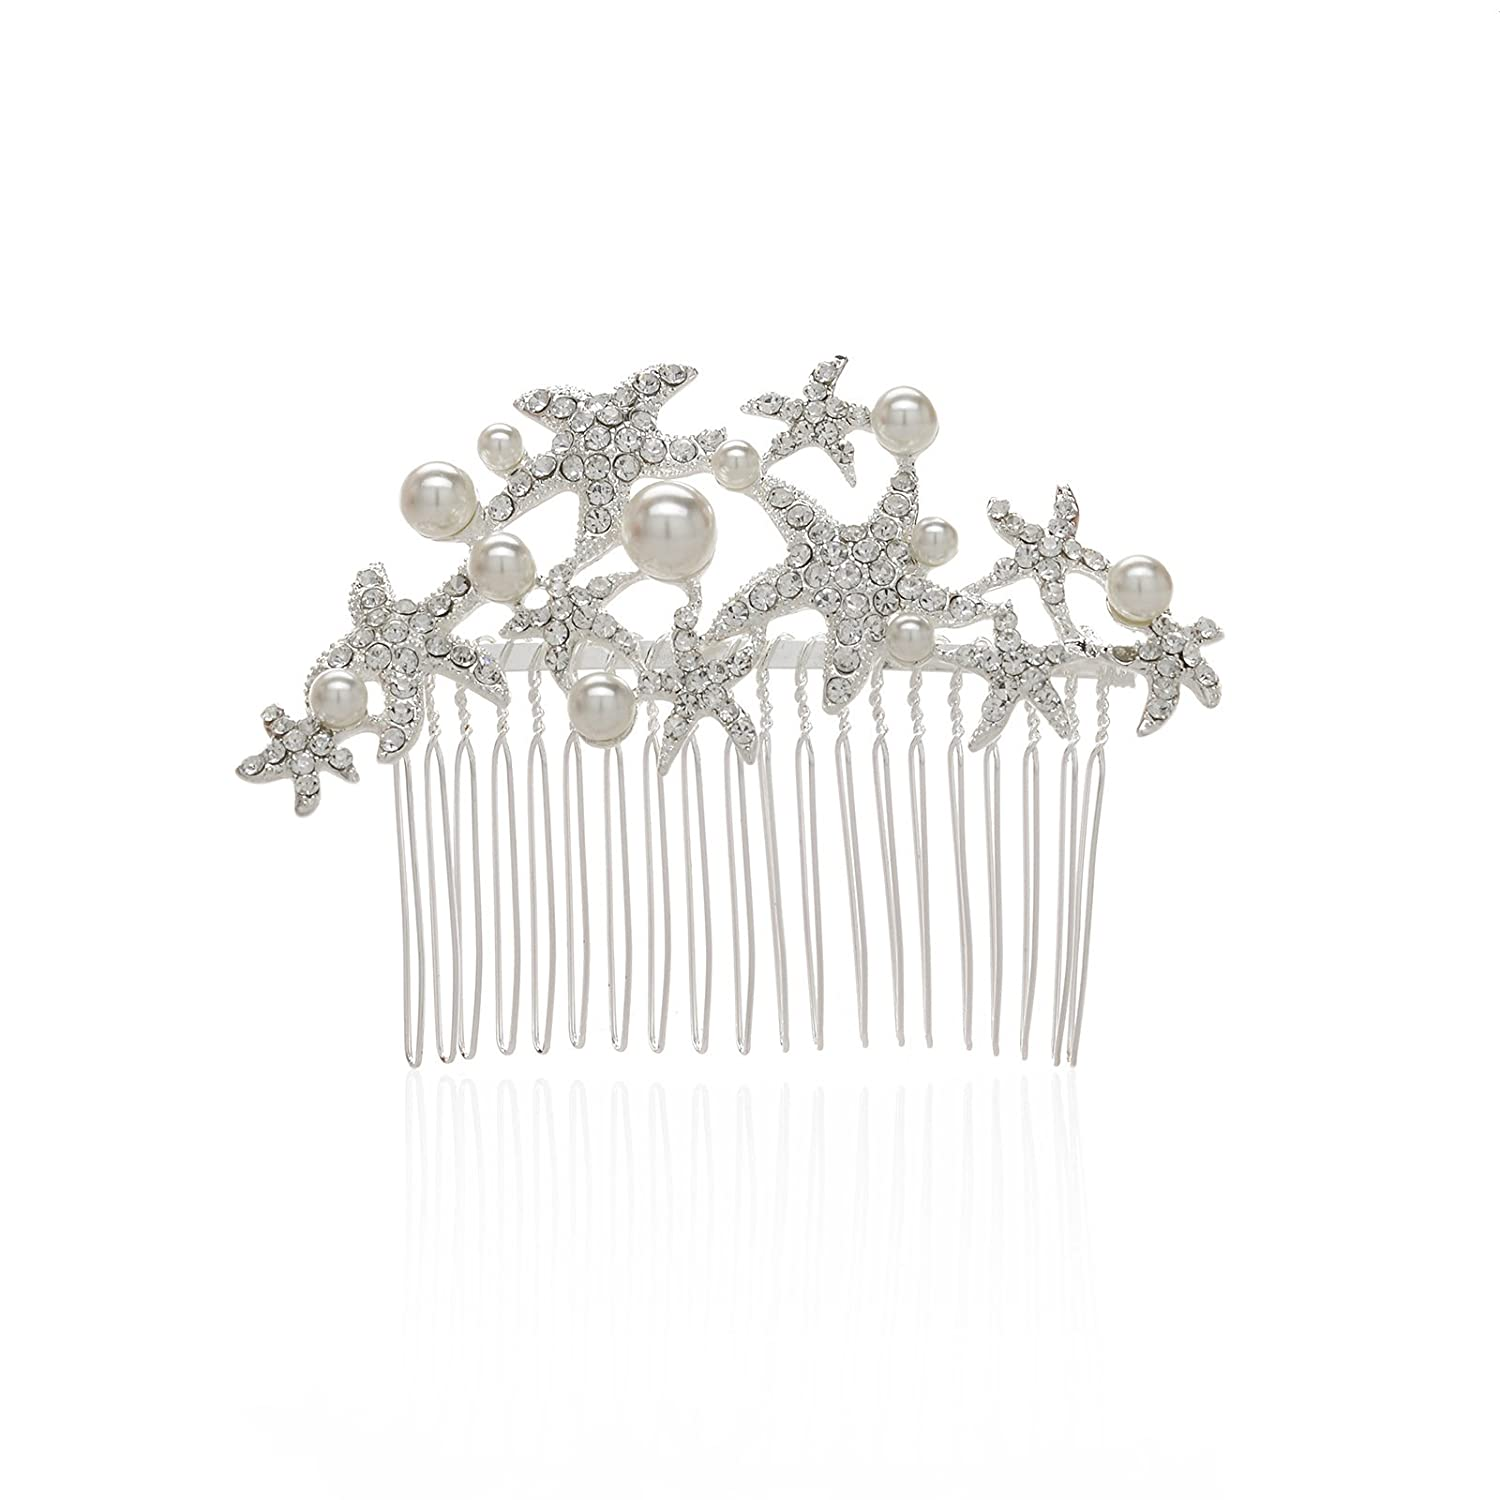 AWEI Bridal Sparkly Starfish Floral Charm Hair Comb Head Jewelry, Freshwater Pearl Wedding Hair Accessories Silver/Gold Plated, 2017 Head Jewelry